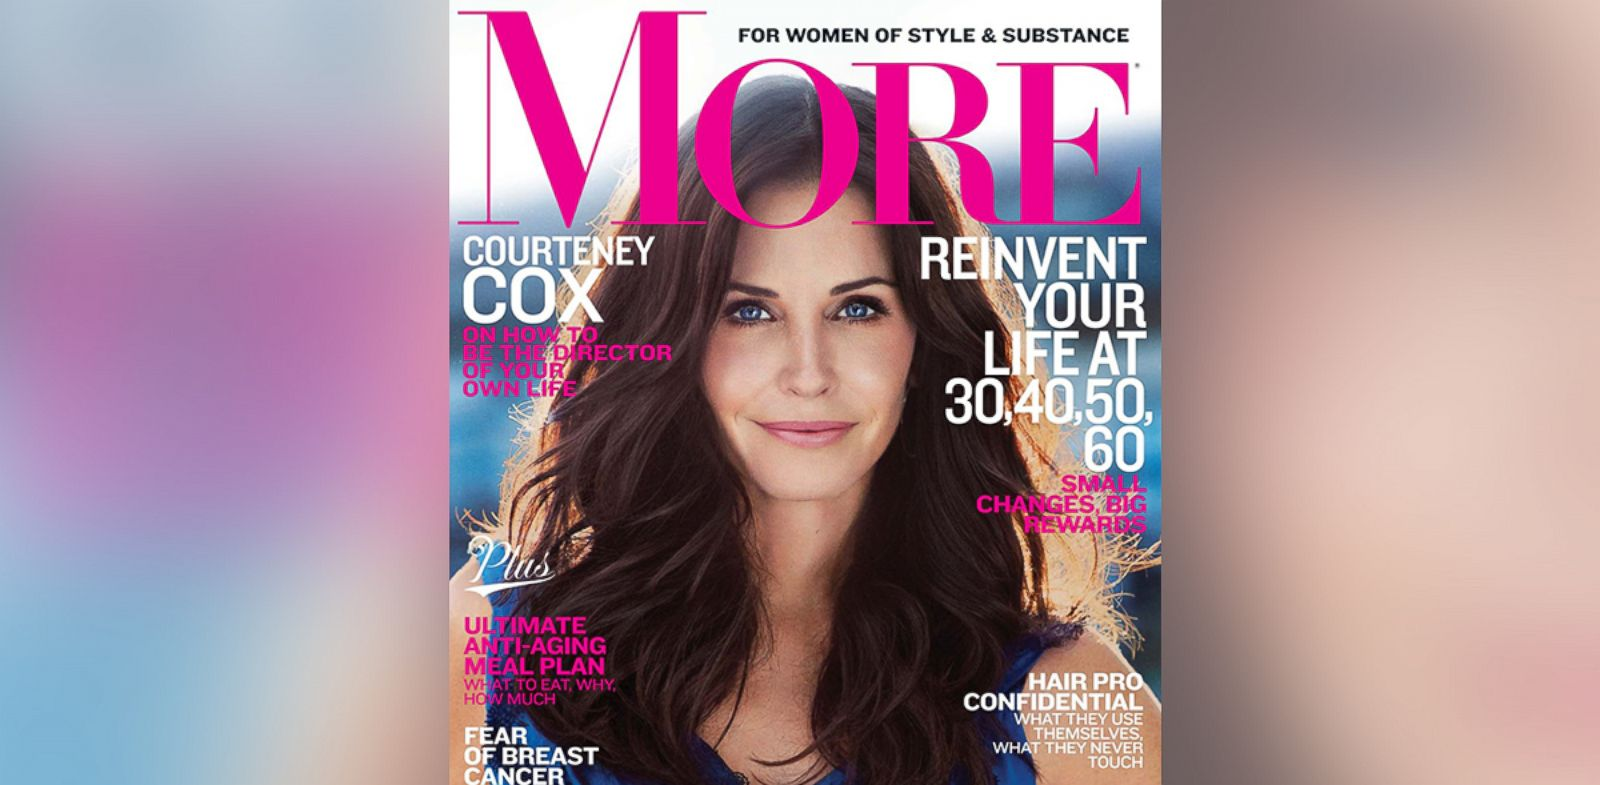 PHOTO: Courtney Cox on the cover of the Feb. 2014 issue of More Magazine.